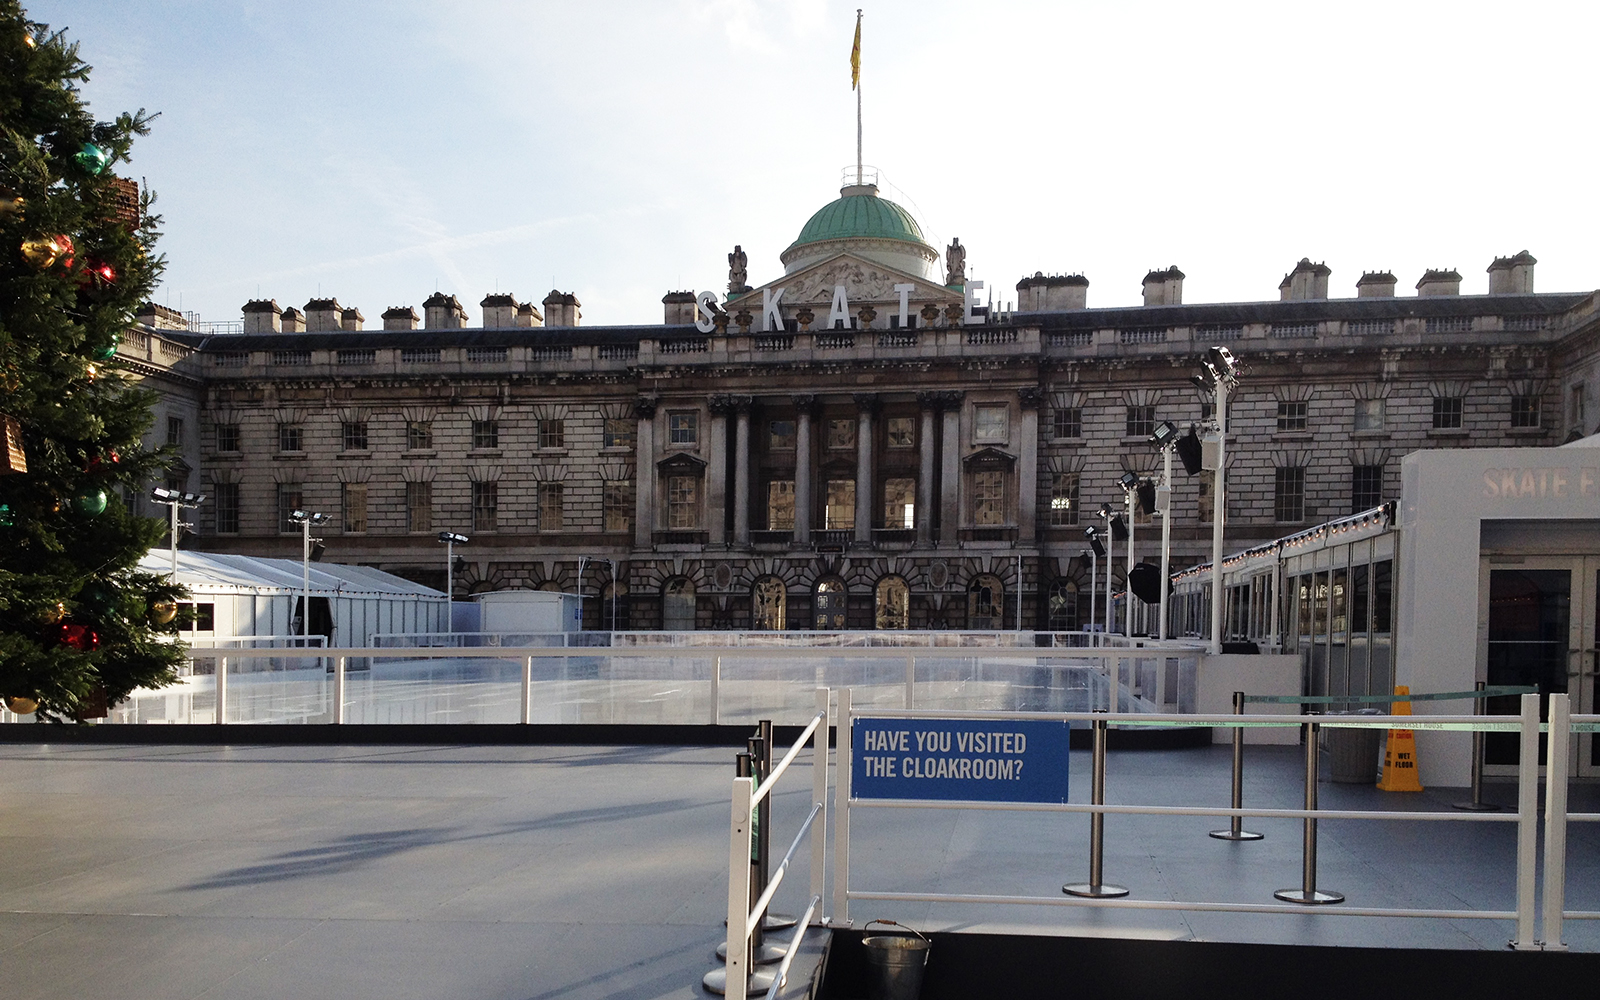 Somerset House 11 November 2016